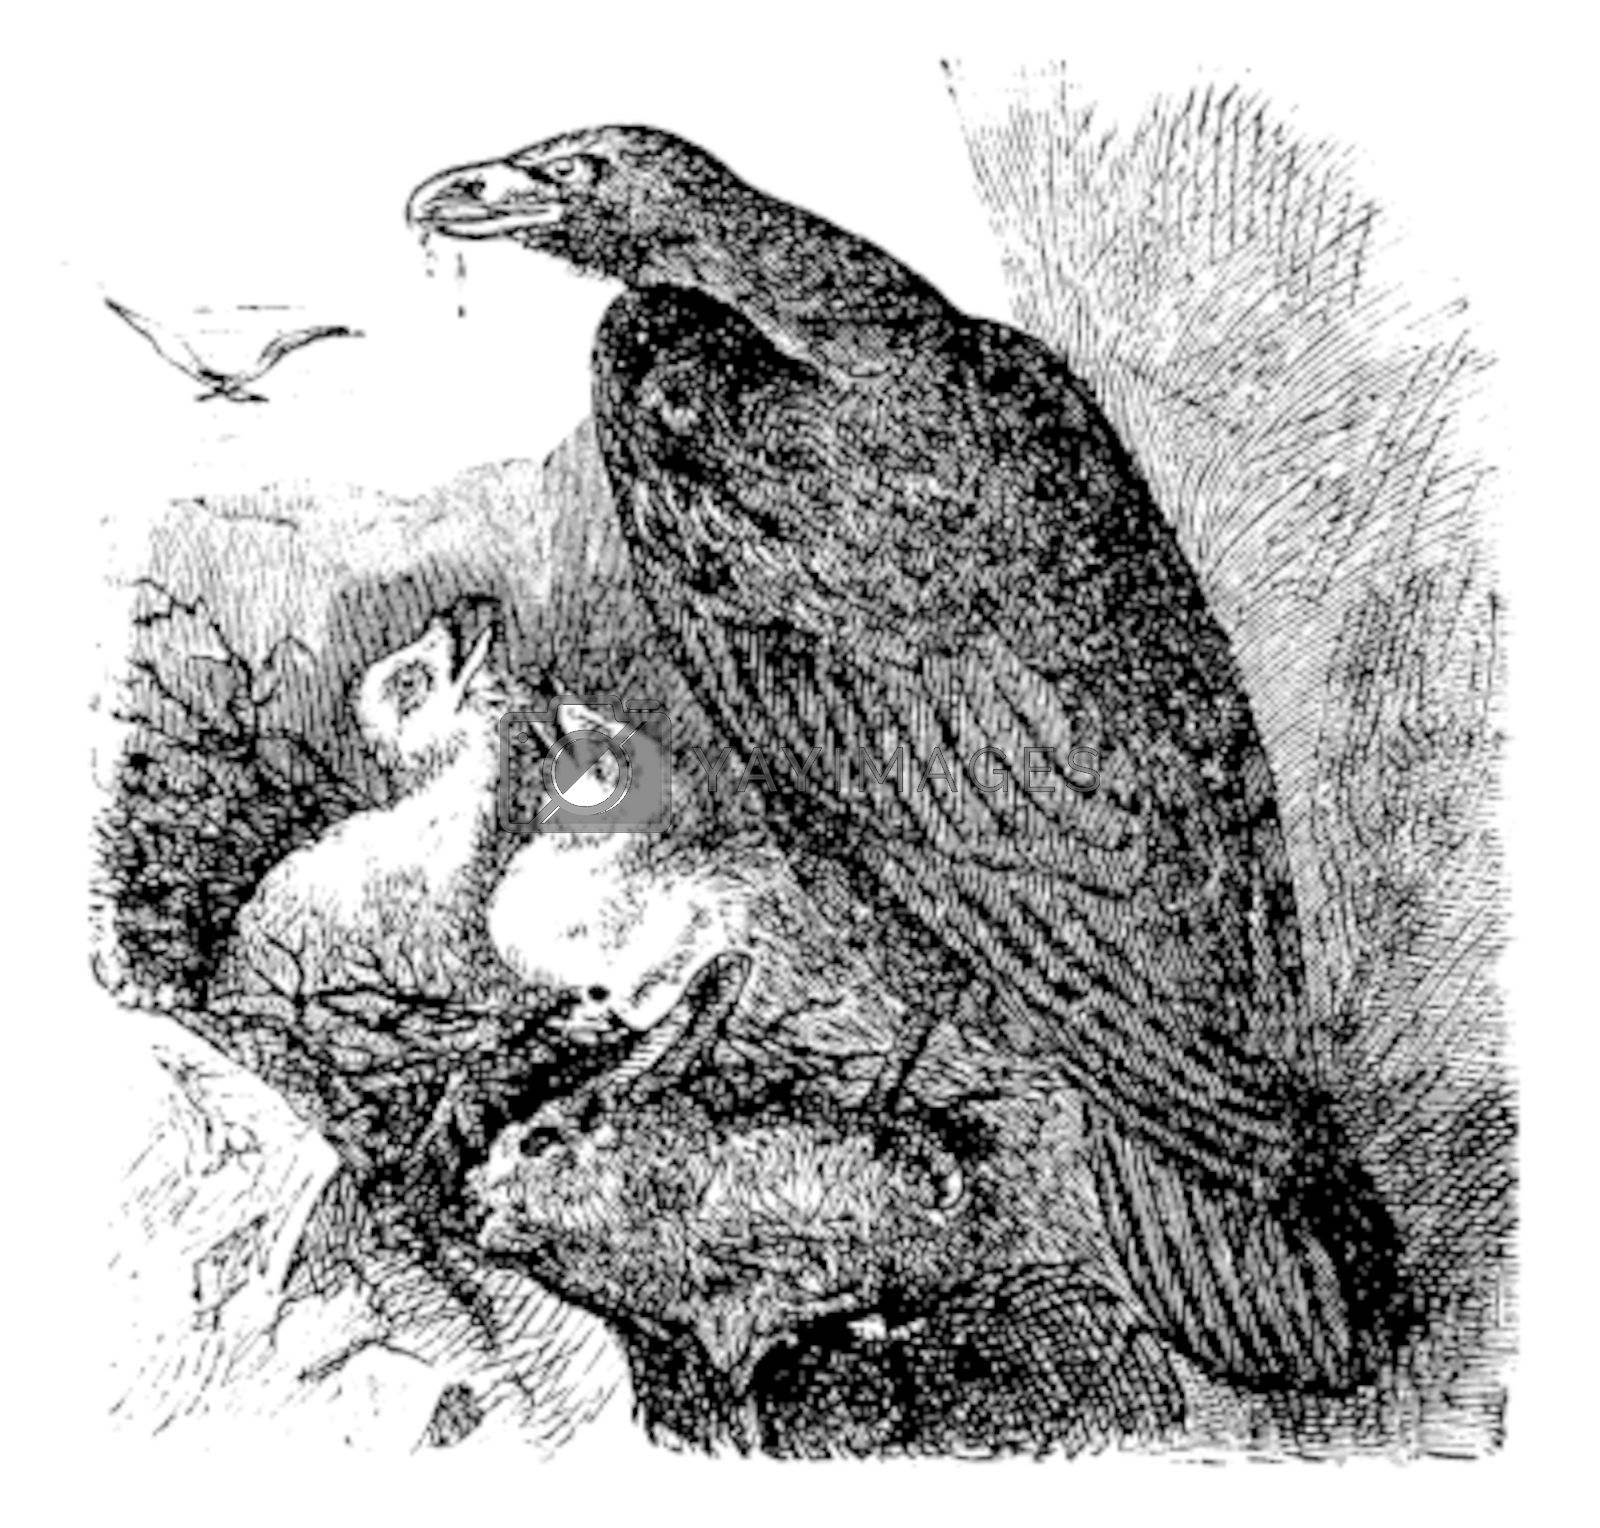 Golden eagle or Aquila chrysaetos vintage engraving, vector. Old engraved illustration of a golden eagle feeding her babies in her nest.